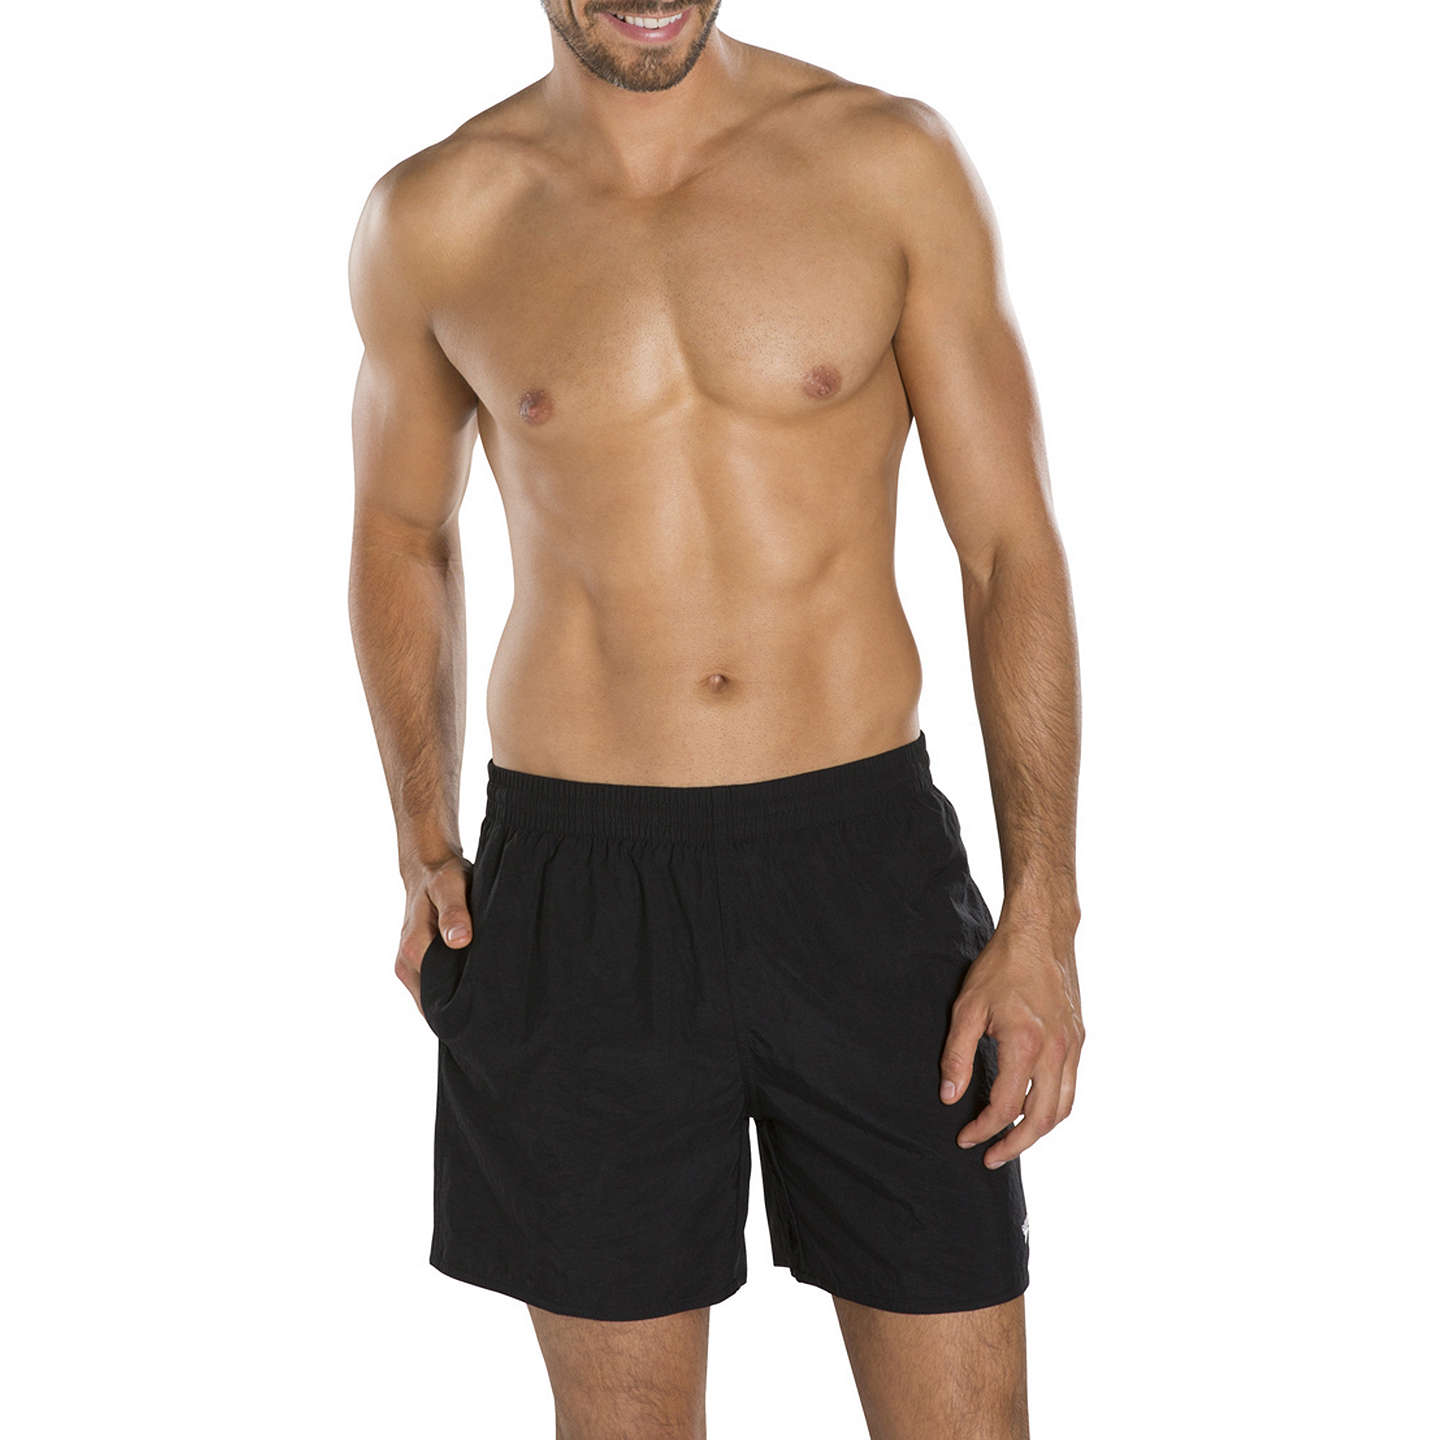 BuySpeedo Solid Watershort Swim Shorts, Black, M Online at johnlewis.com ...